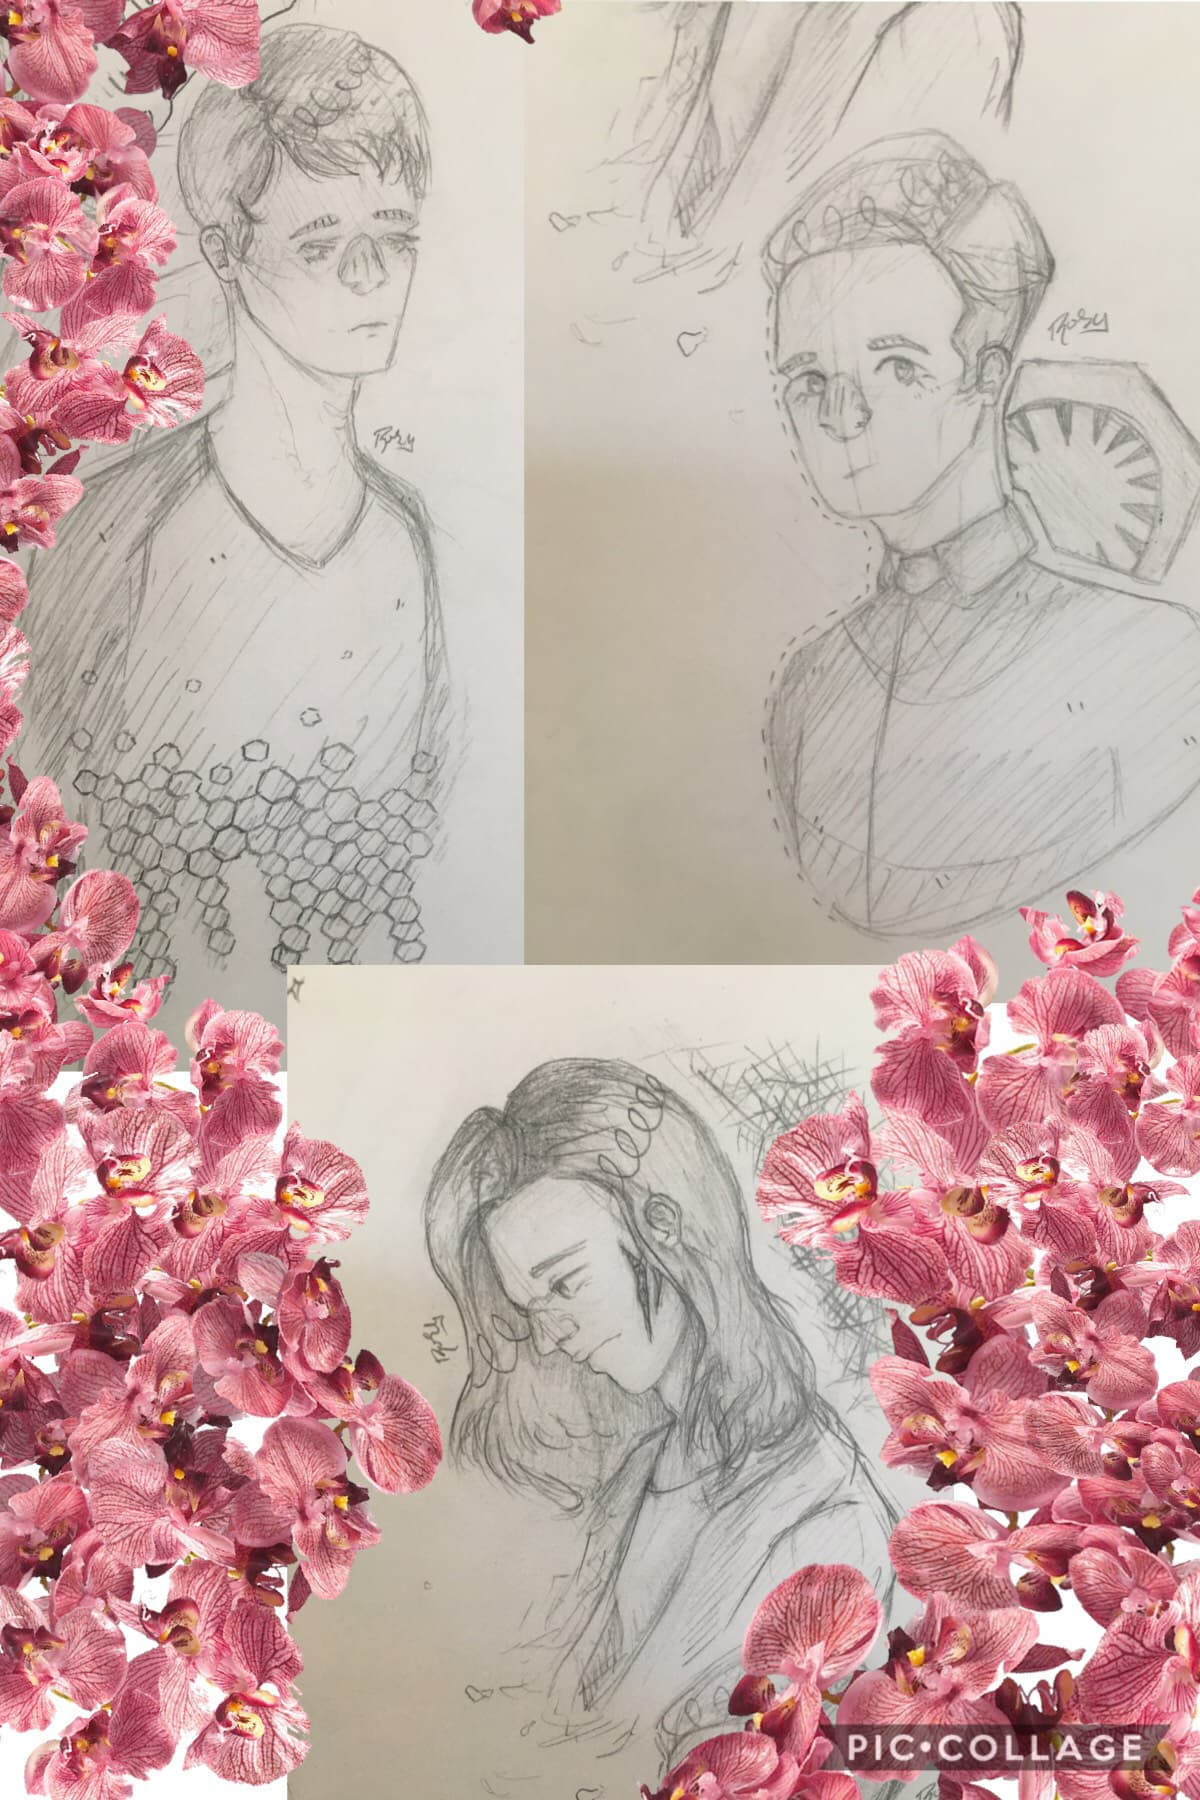 i have drawn too many domhnall gleeson characters over the past few months and it takes up an absurd amount of my sketchbook, these were all done a few months ago and there are flowers i got off of google images to hide shiТ I don't need y'all seeing or j